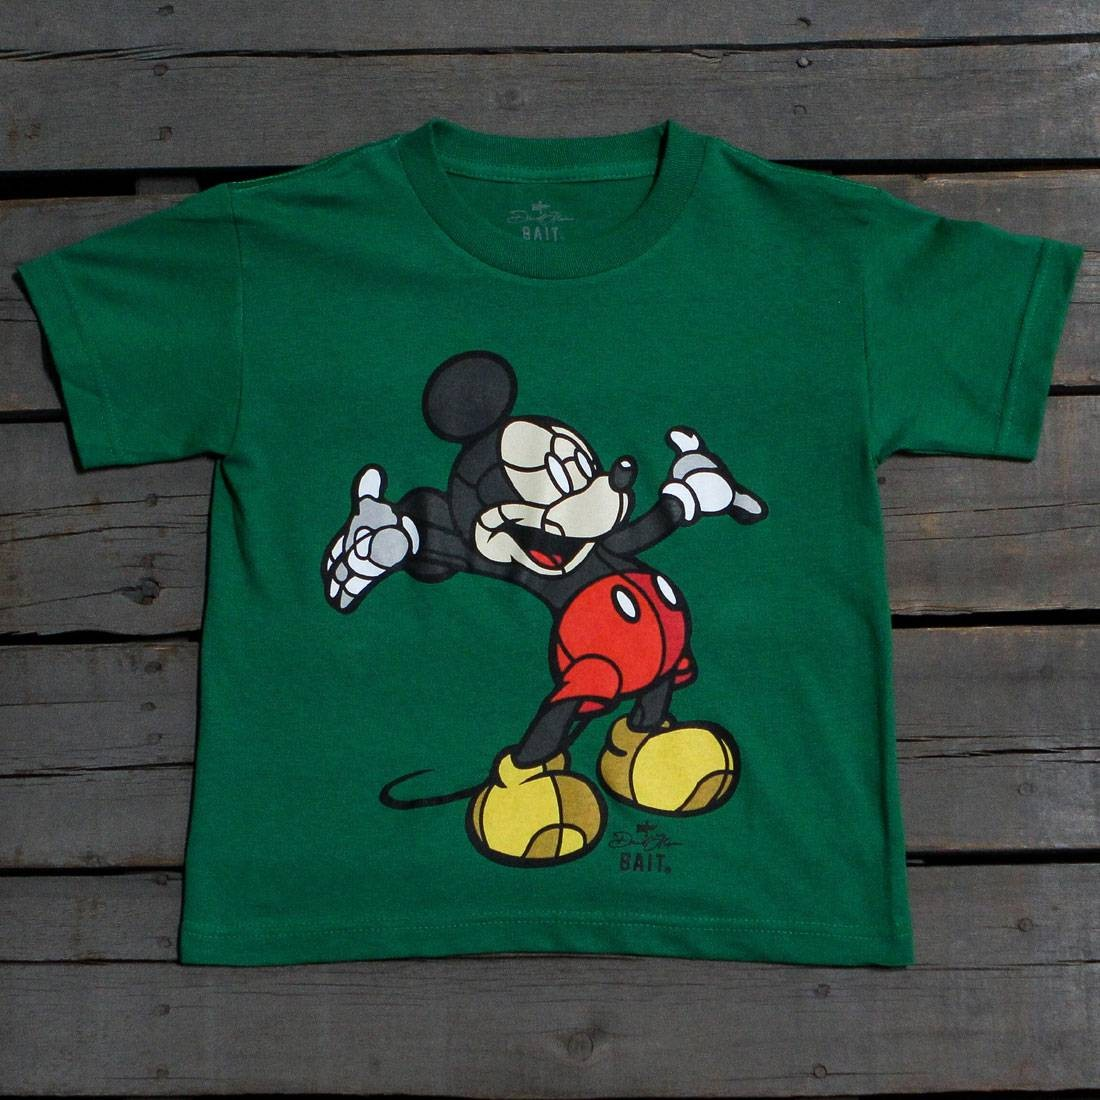 BAIT x David Flores Mickey Youth Tee (green / kelly green)